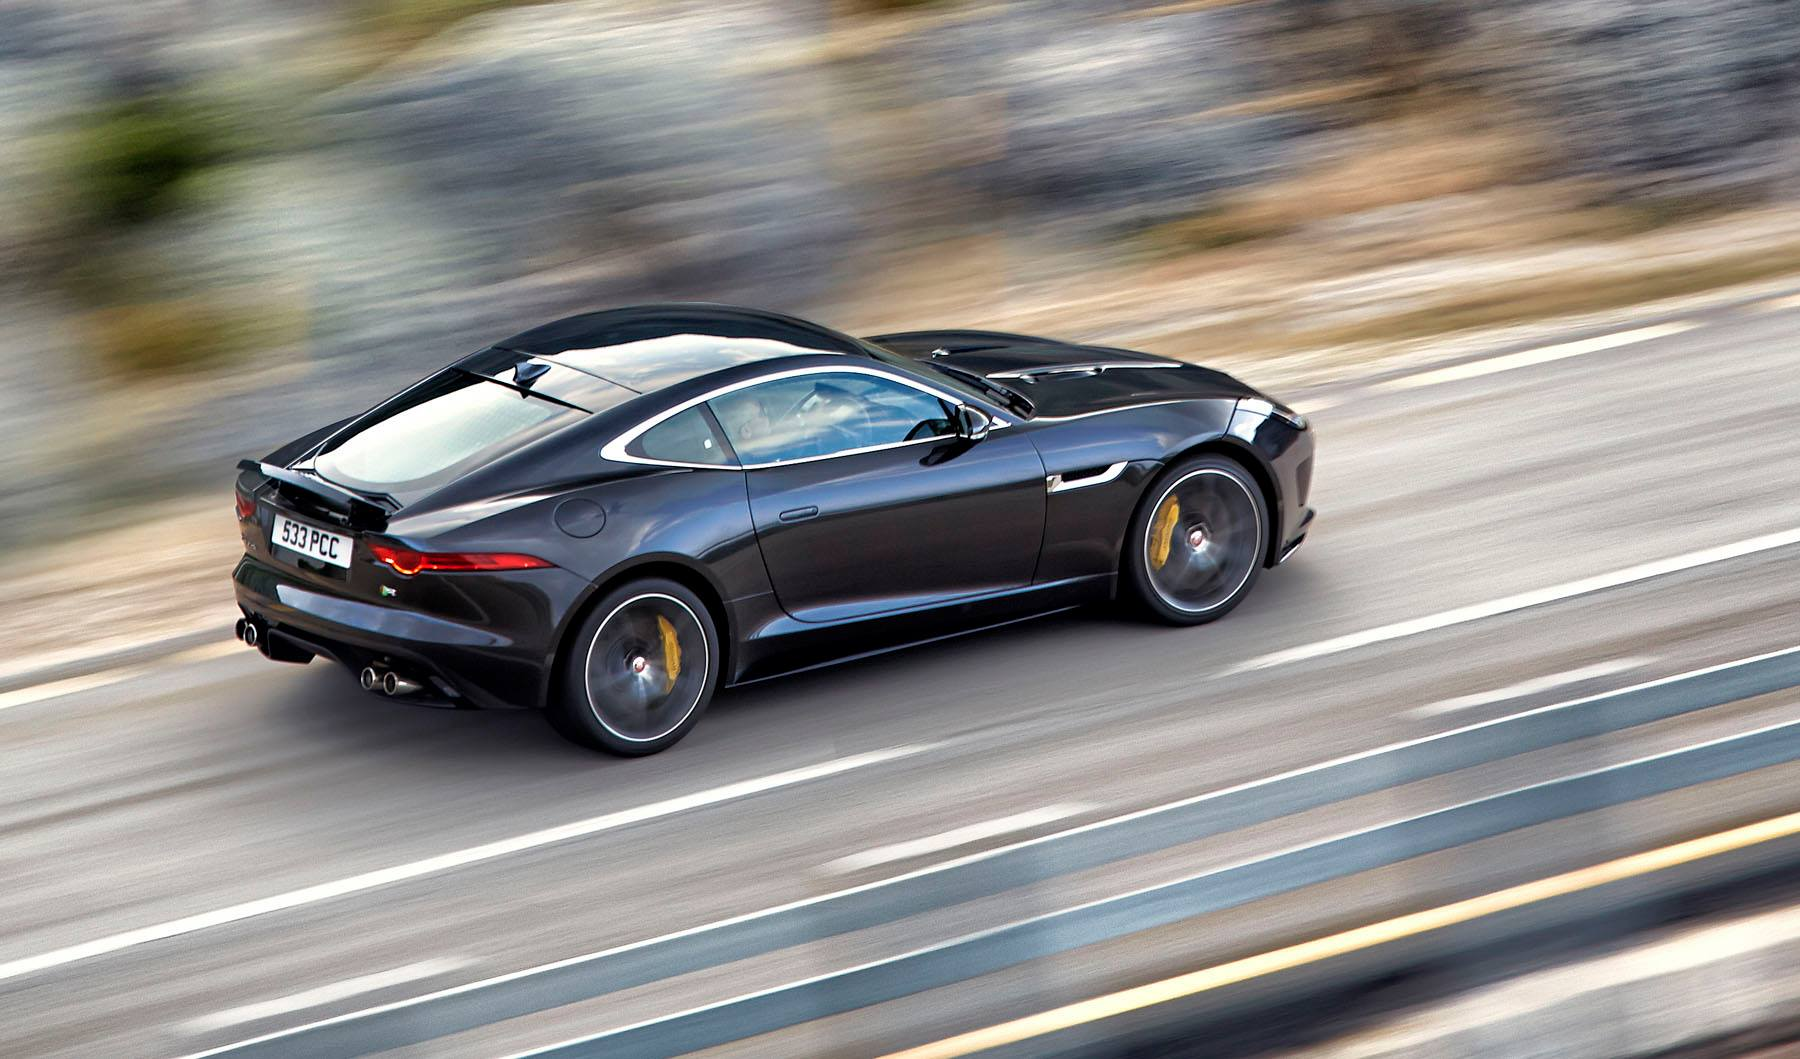 JAGUAR F-TYPE COUPÉ 2014